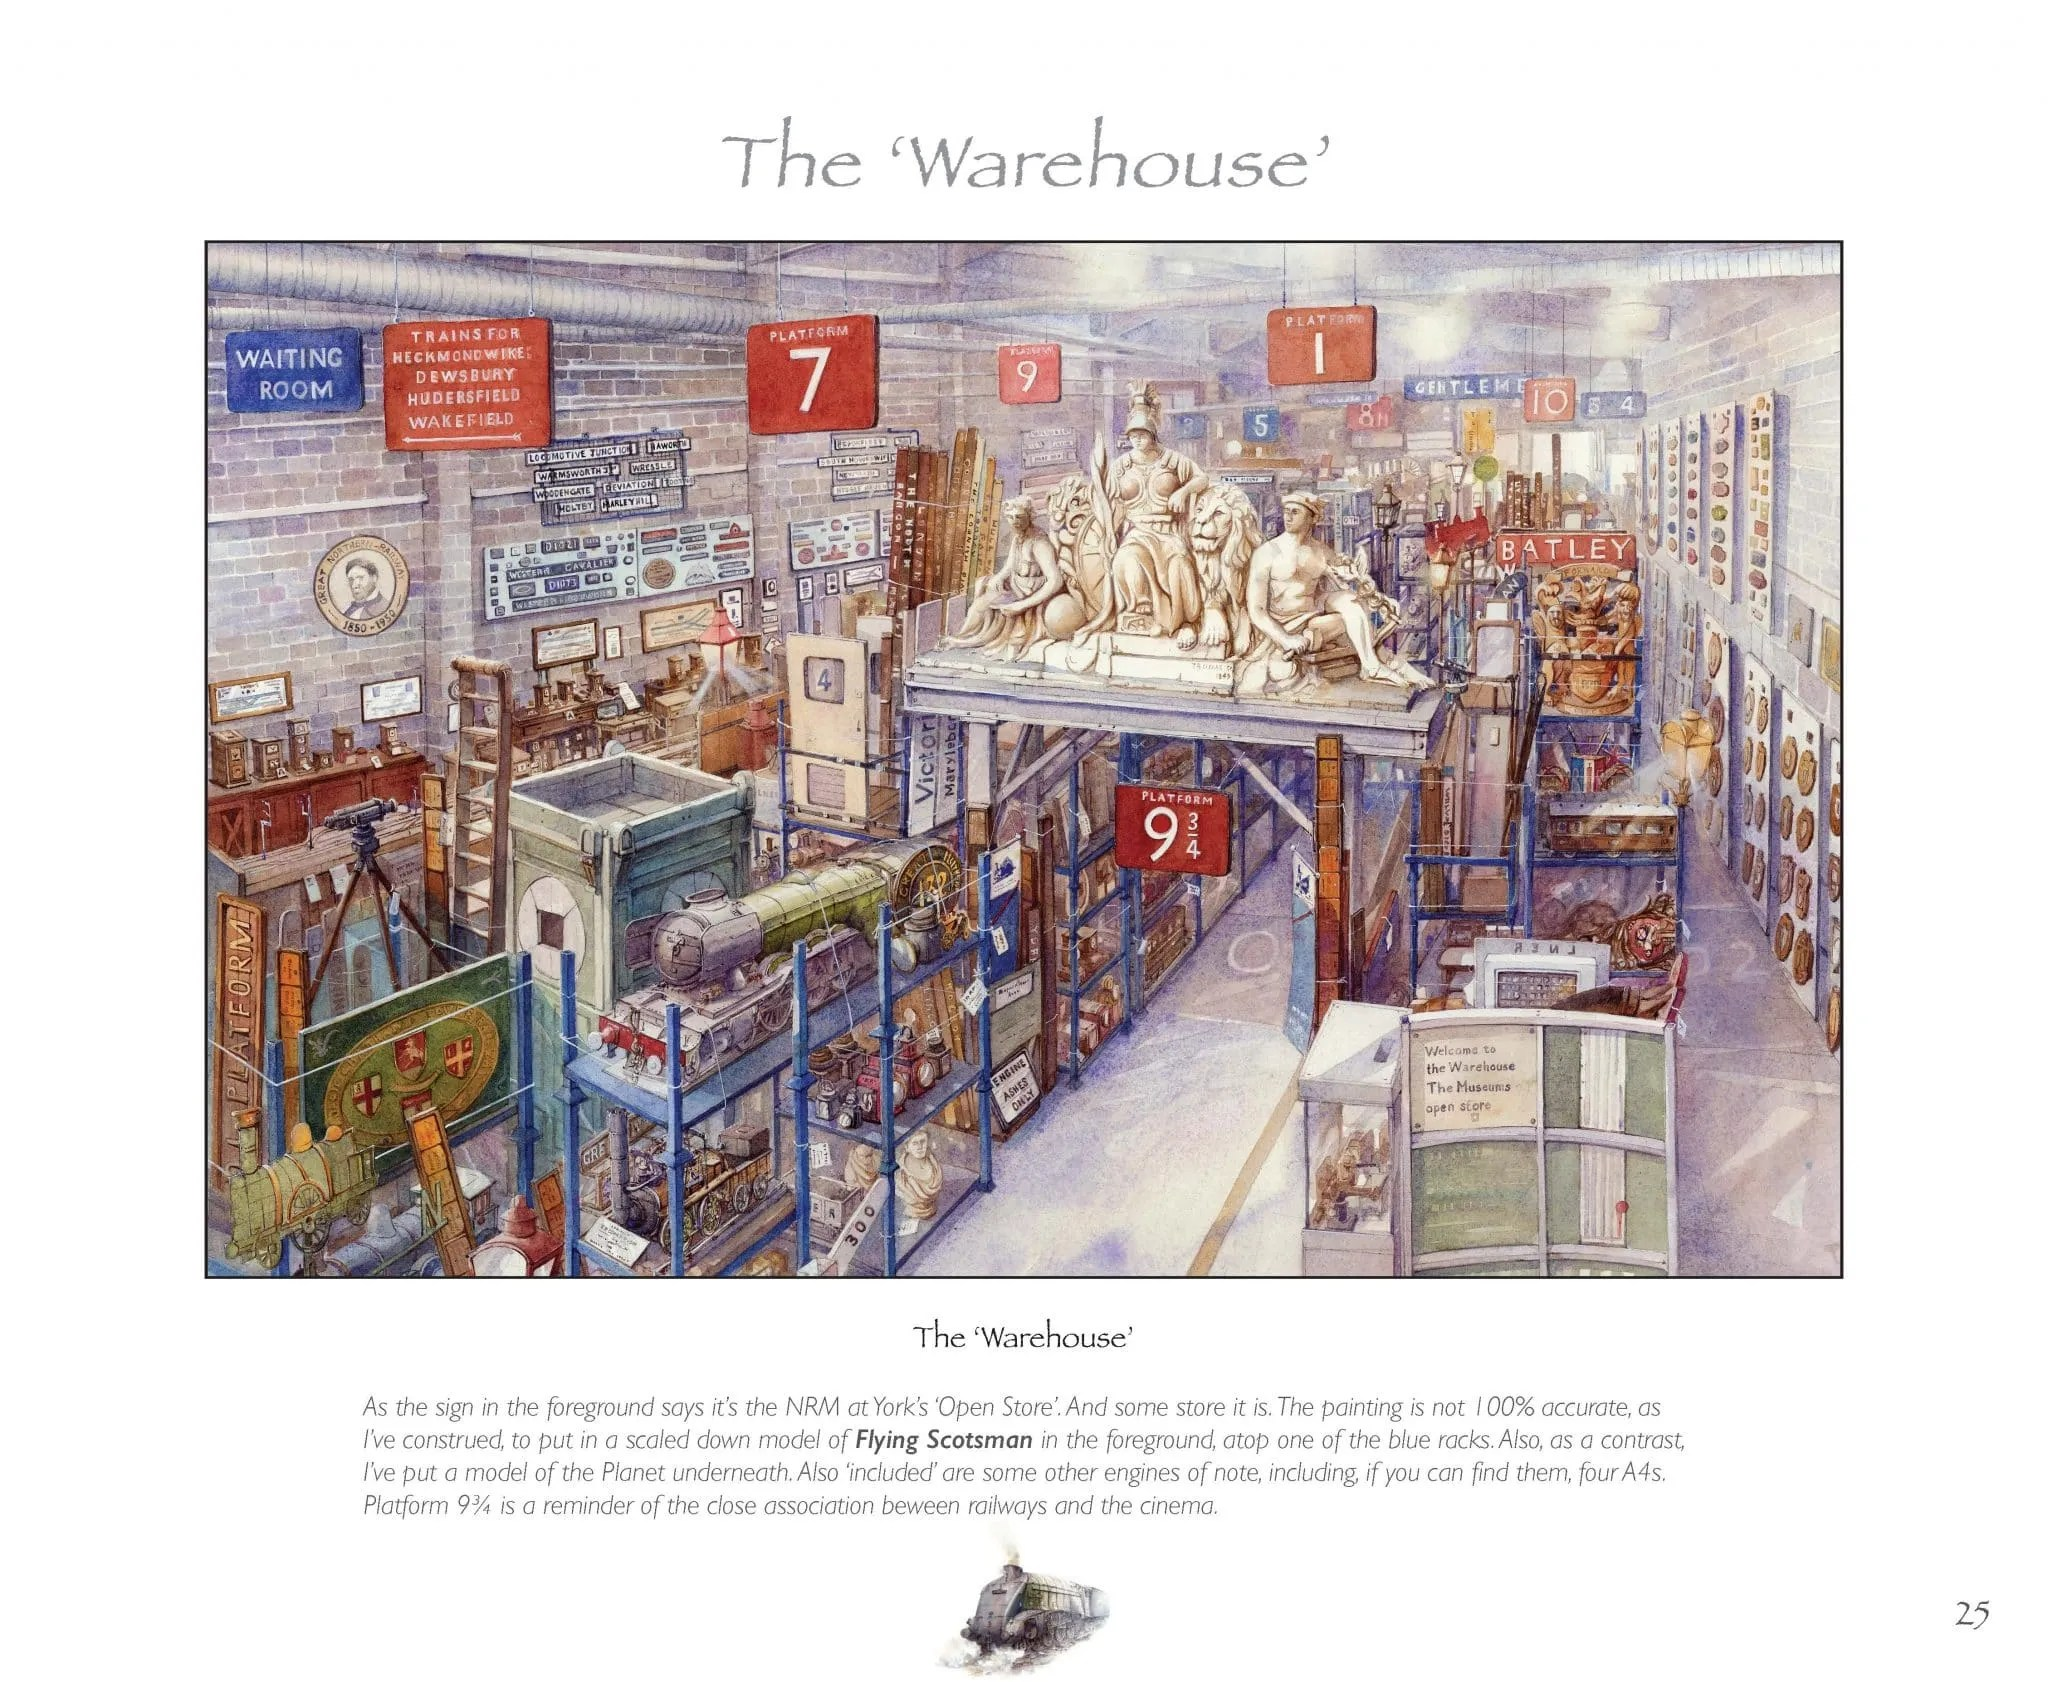 Railway Warehouse painting from Odyssey in Steam book